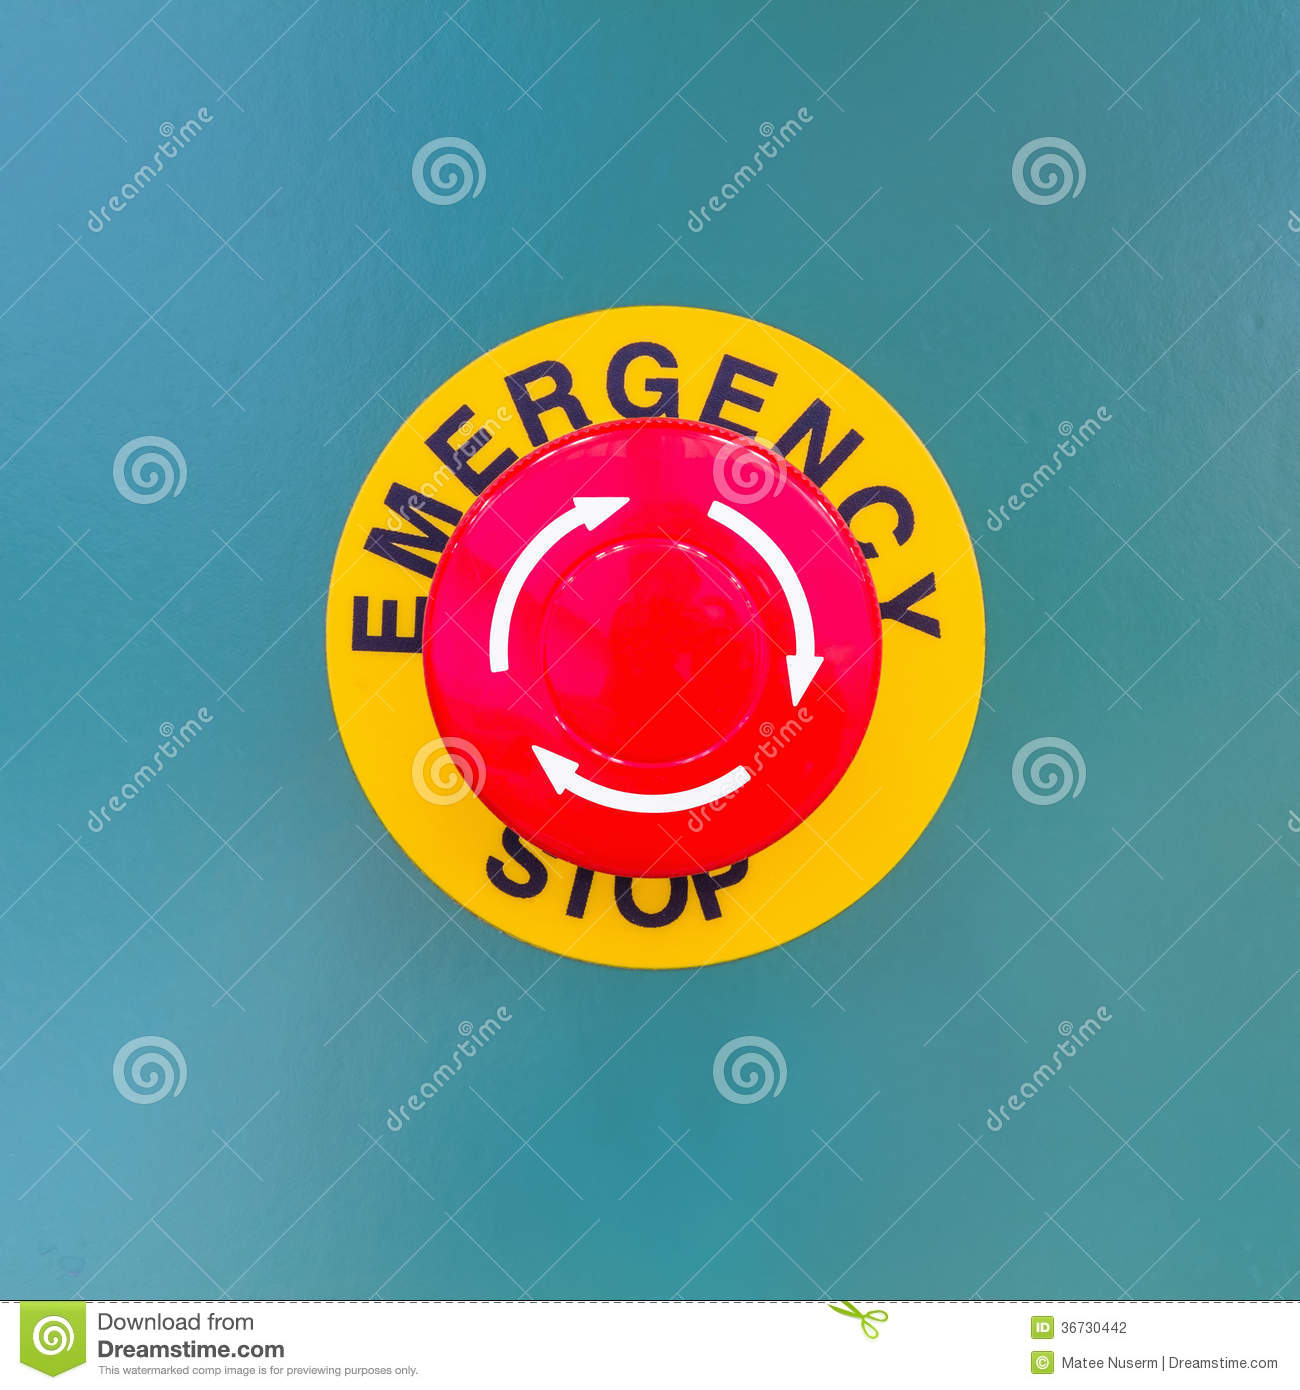 Emergency stop icon clipart emergency off - Button Close Device Electrical Emergency Mushroom Safety Stop